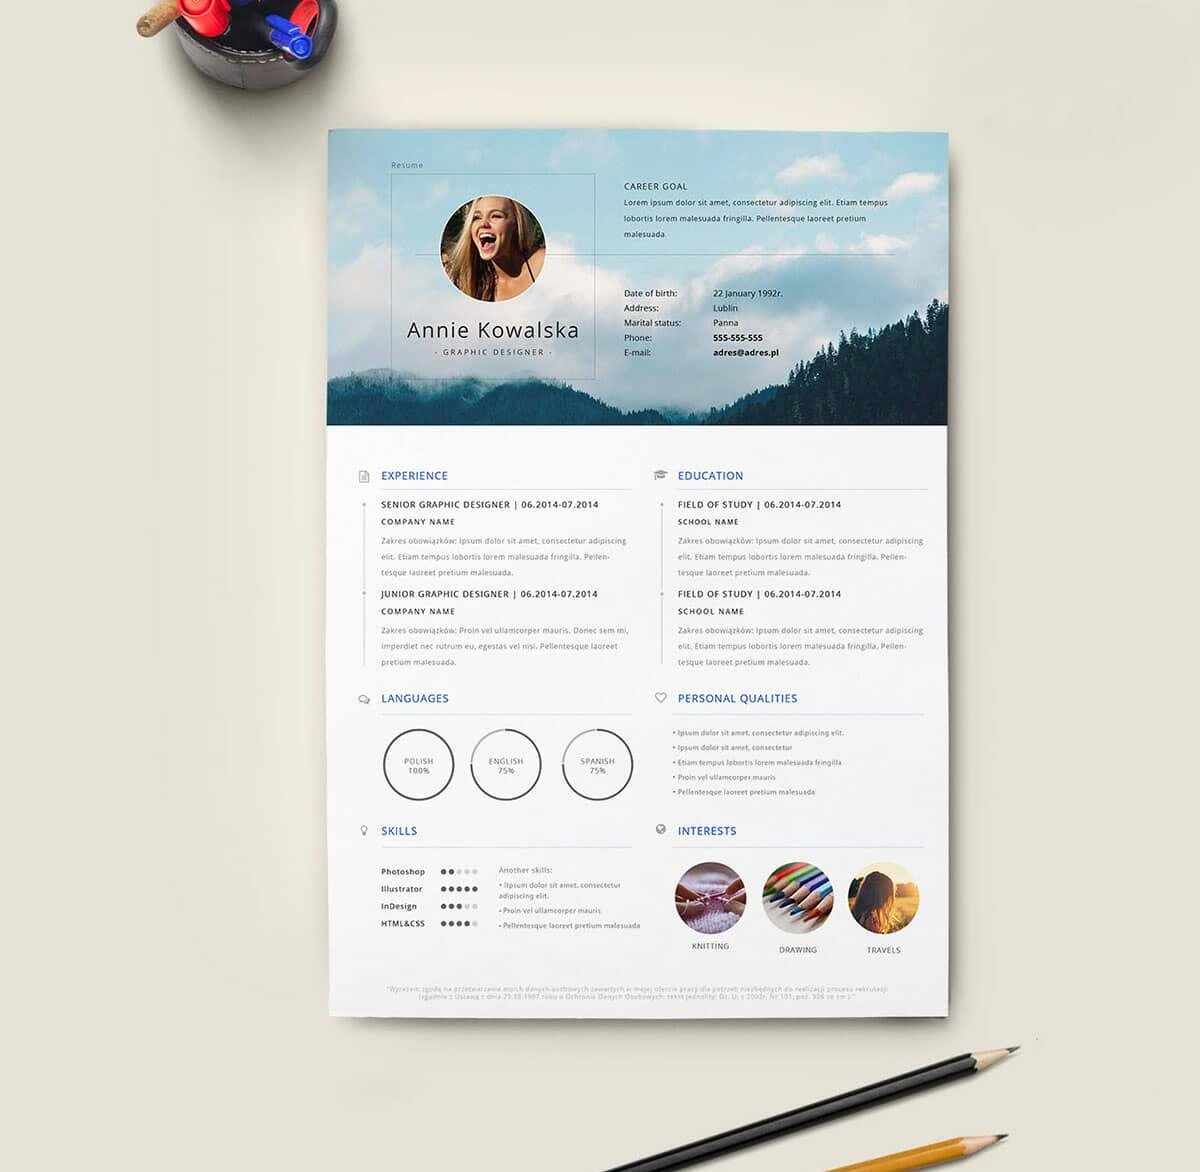 Free Resume Templates 18 Downloadable Resume Templates to Use